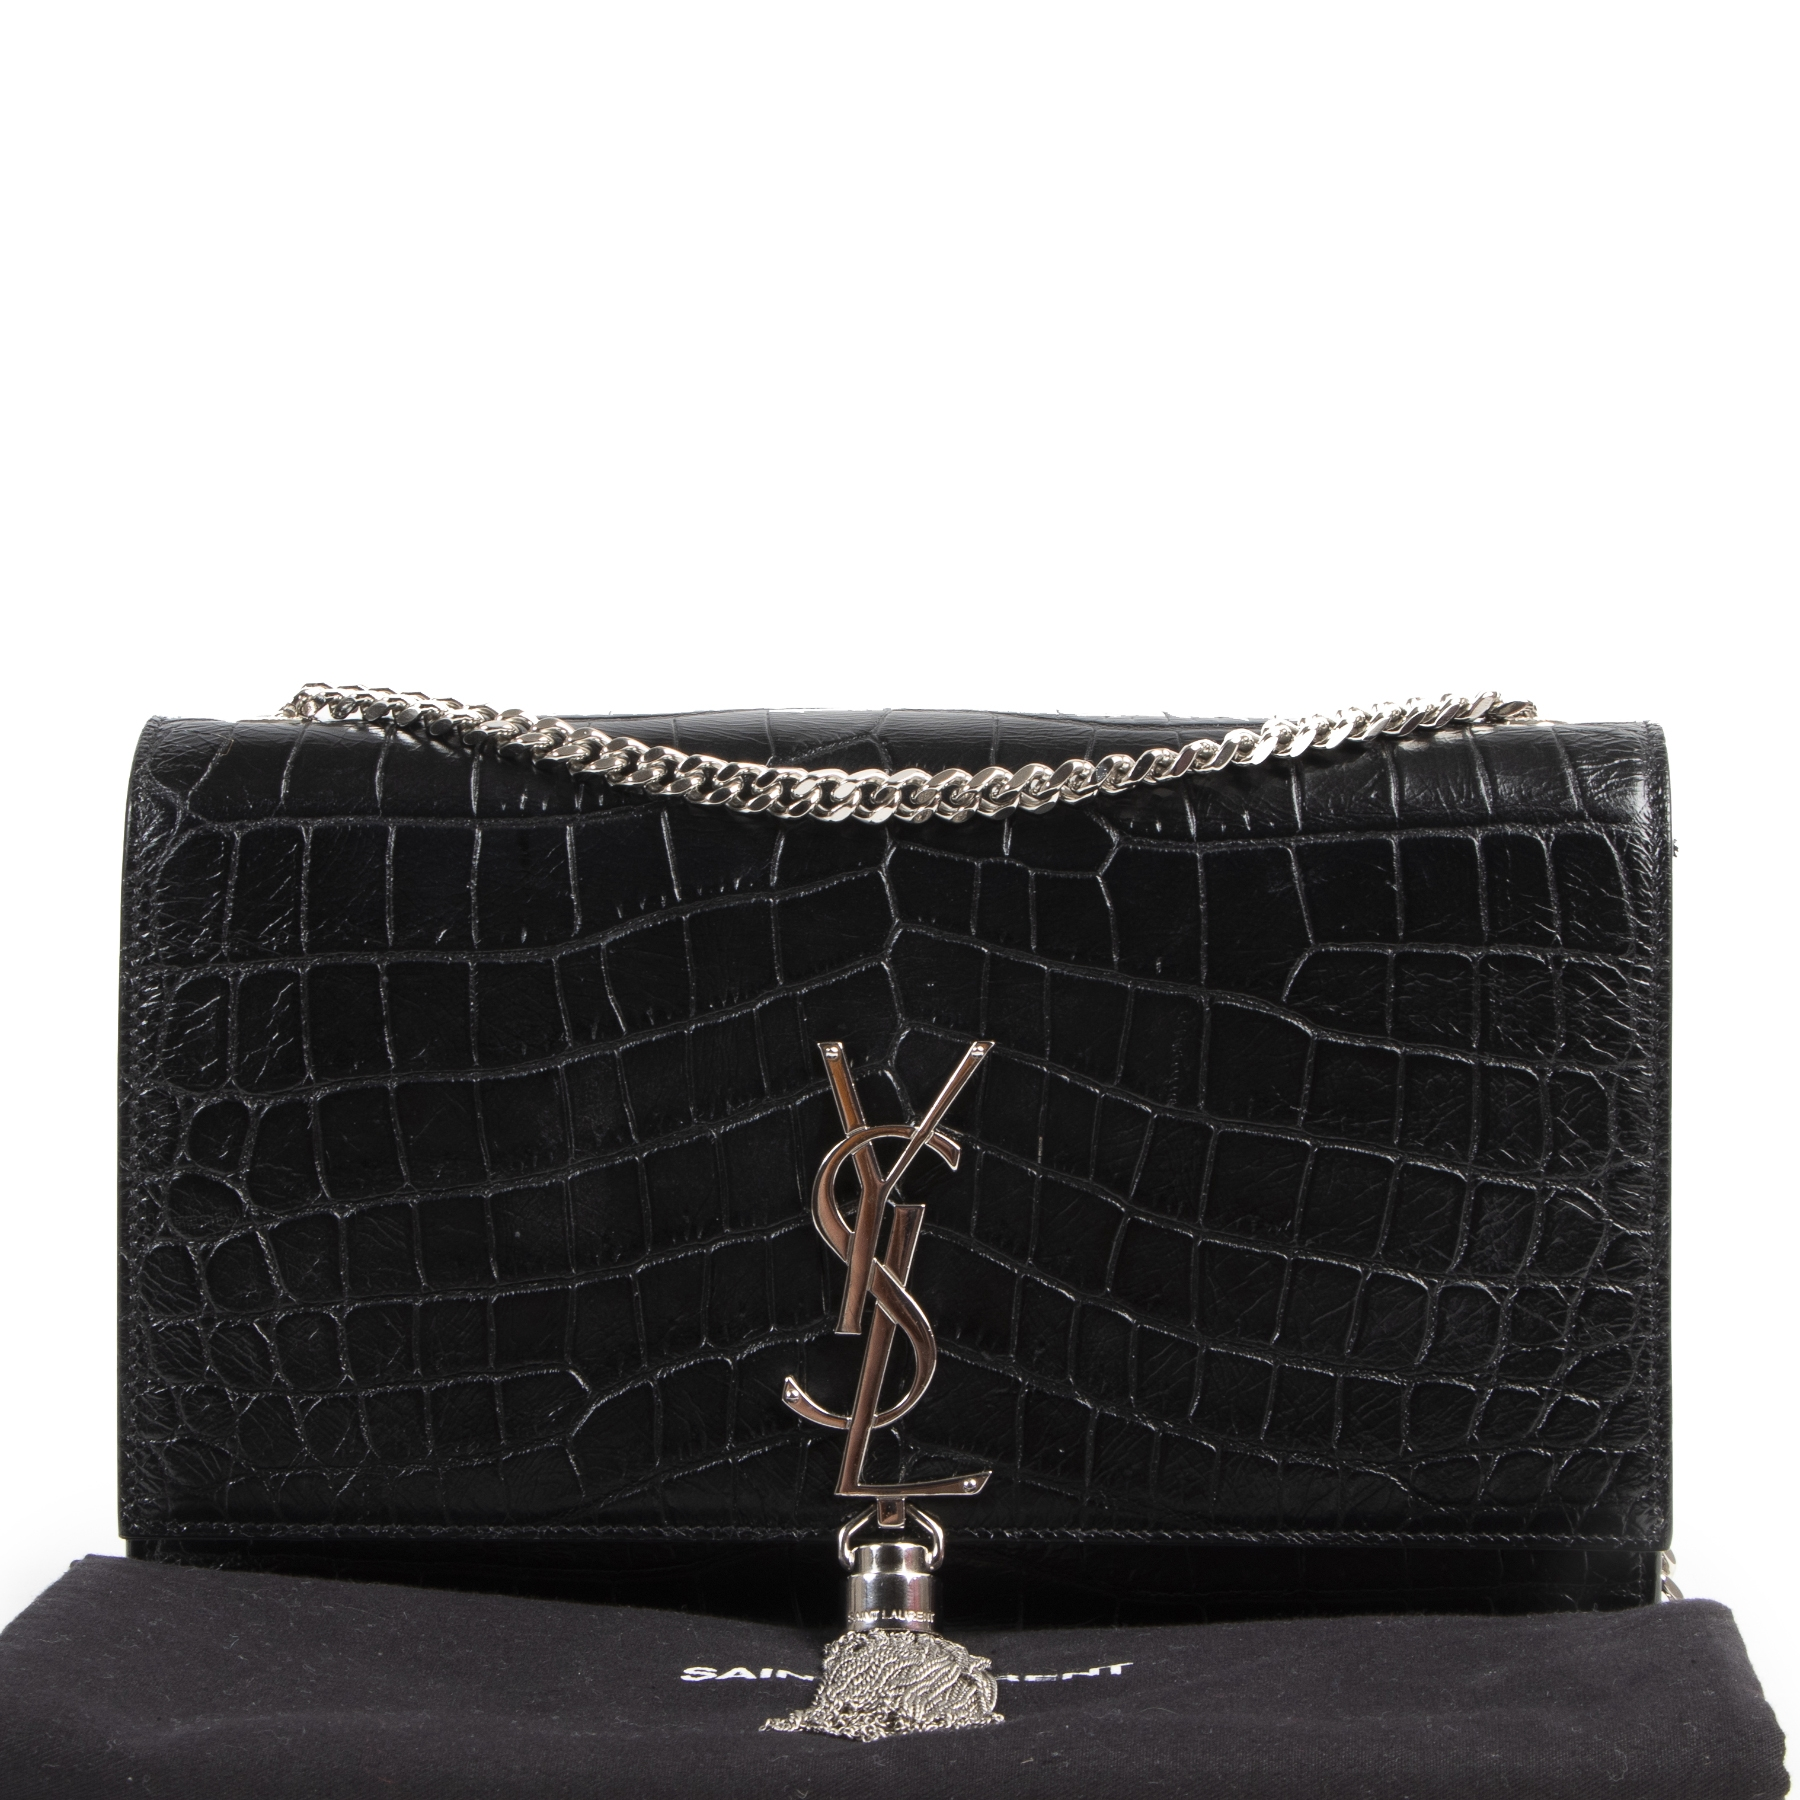 Koop en verkoop uw authentieke designer Saint Laurent Kate Tassel Croc Embossed Leather Bag